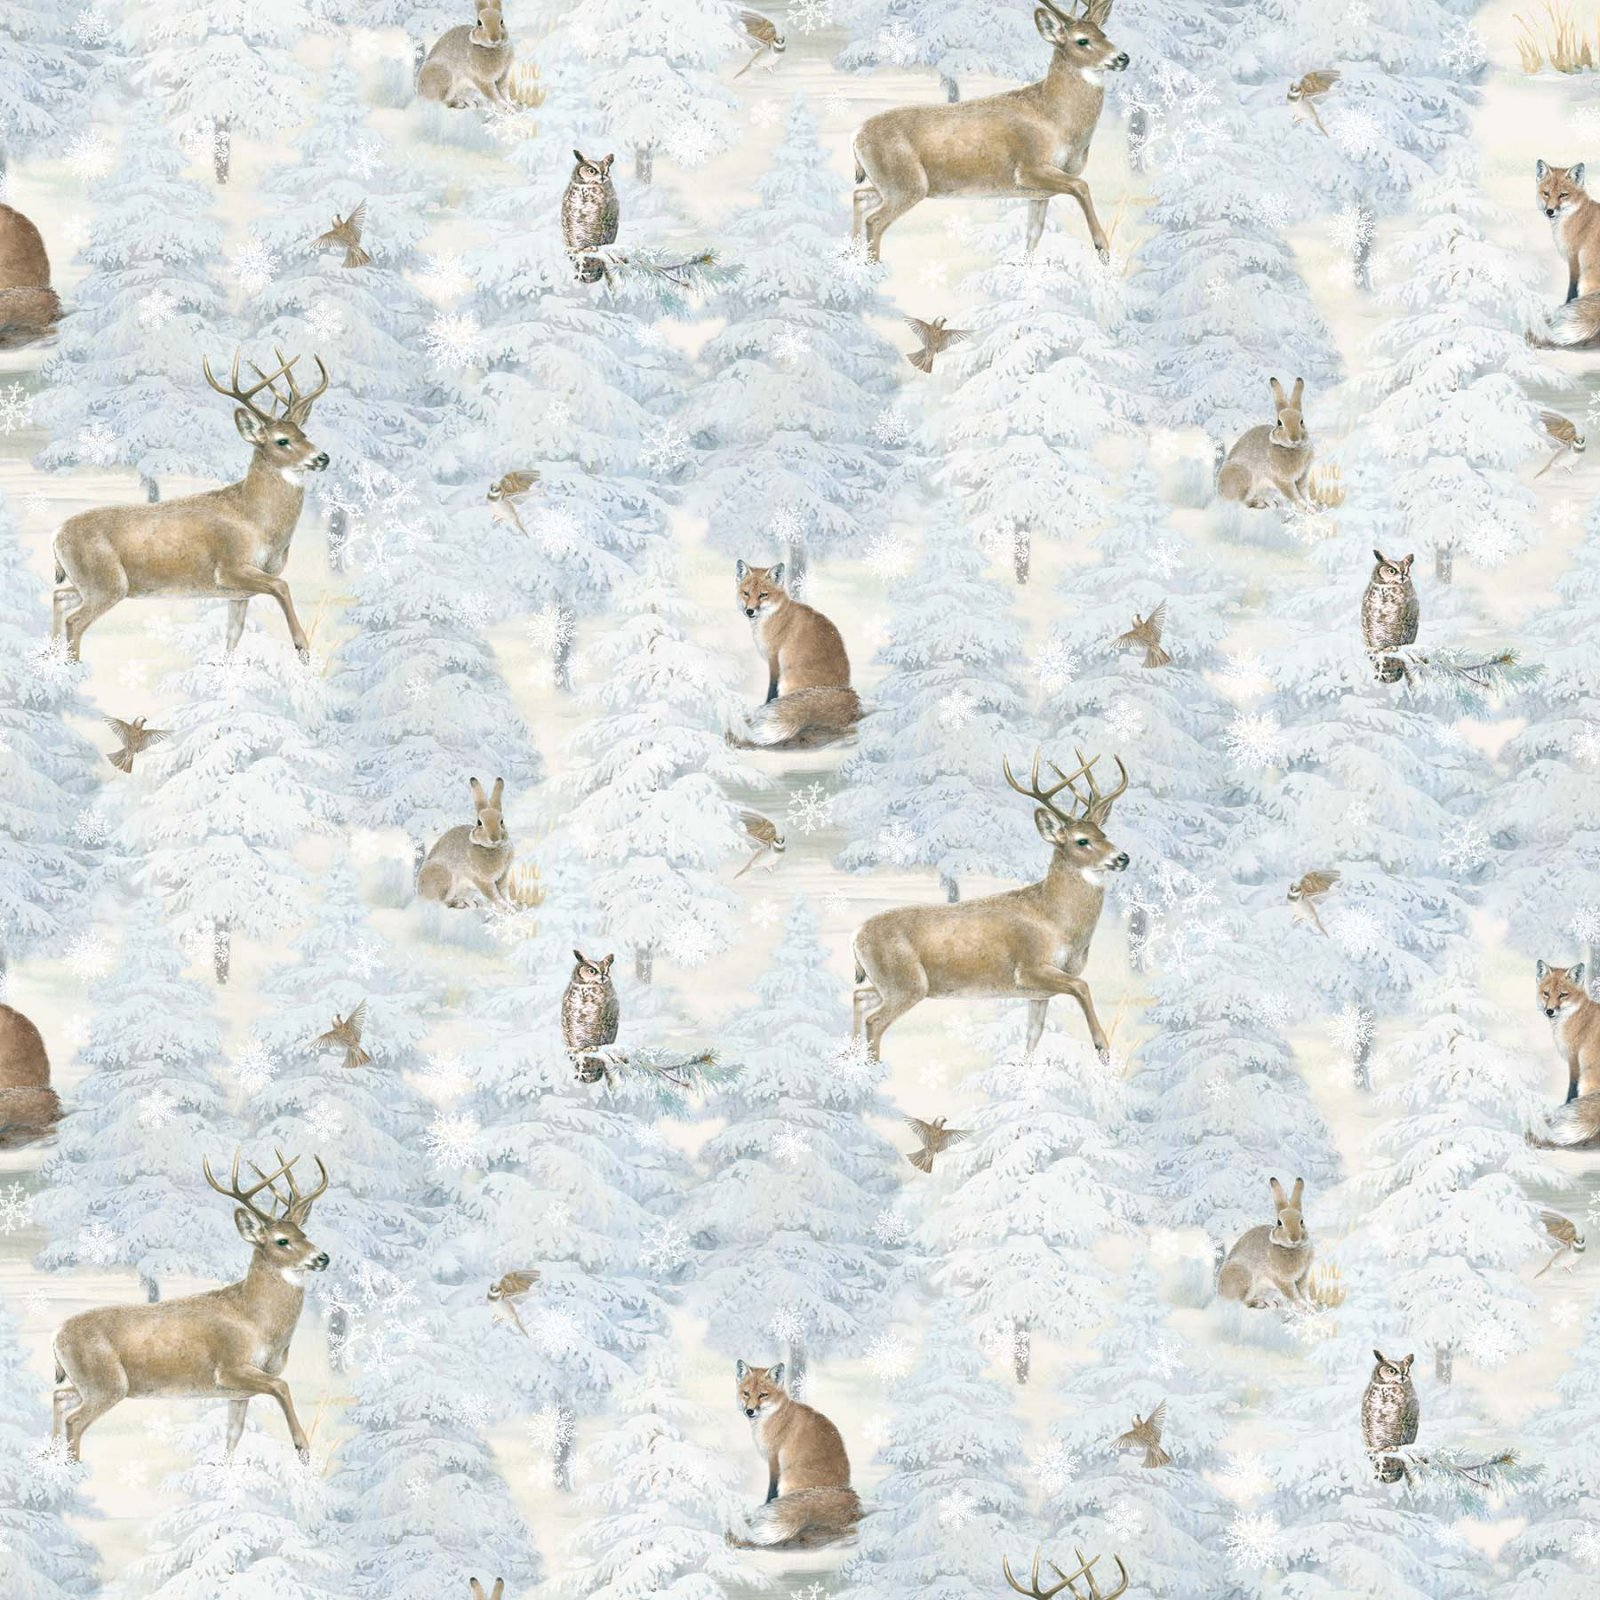 Northcott Enchanted Forest Flannel F22301-41 Snowy Scene with Forest Animals